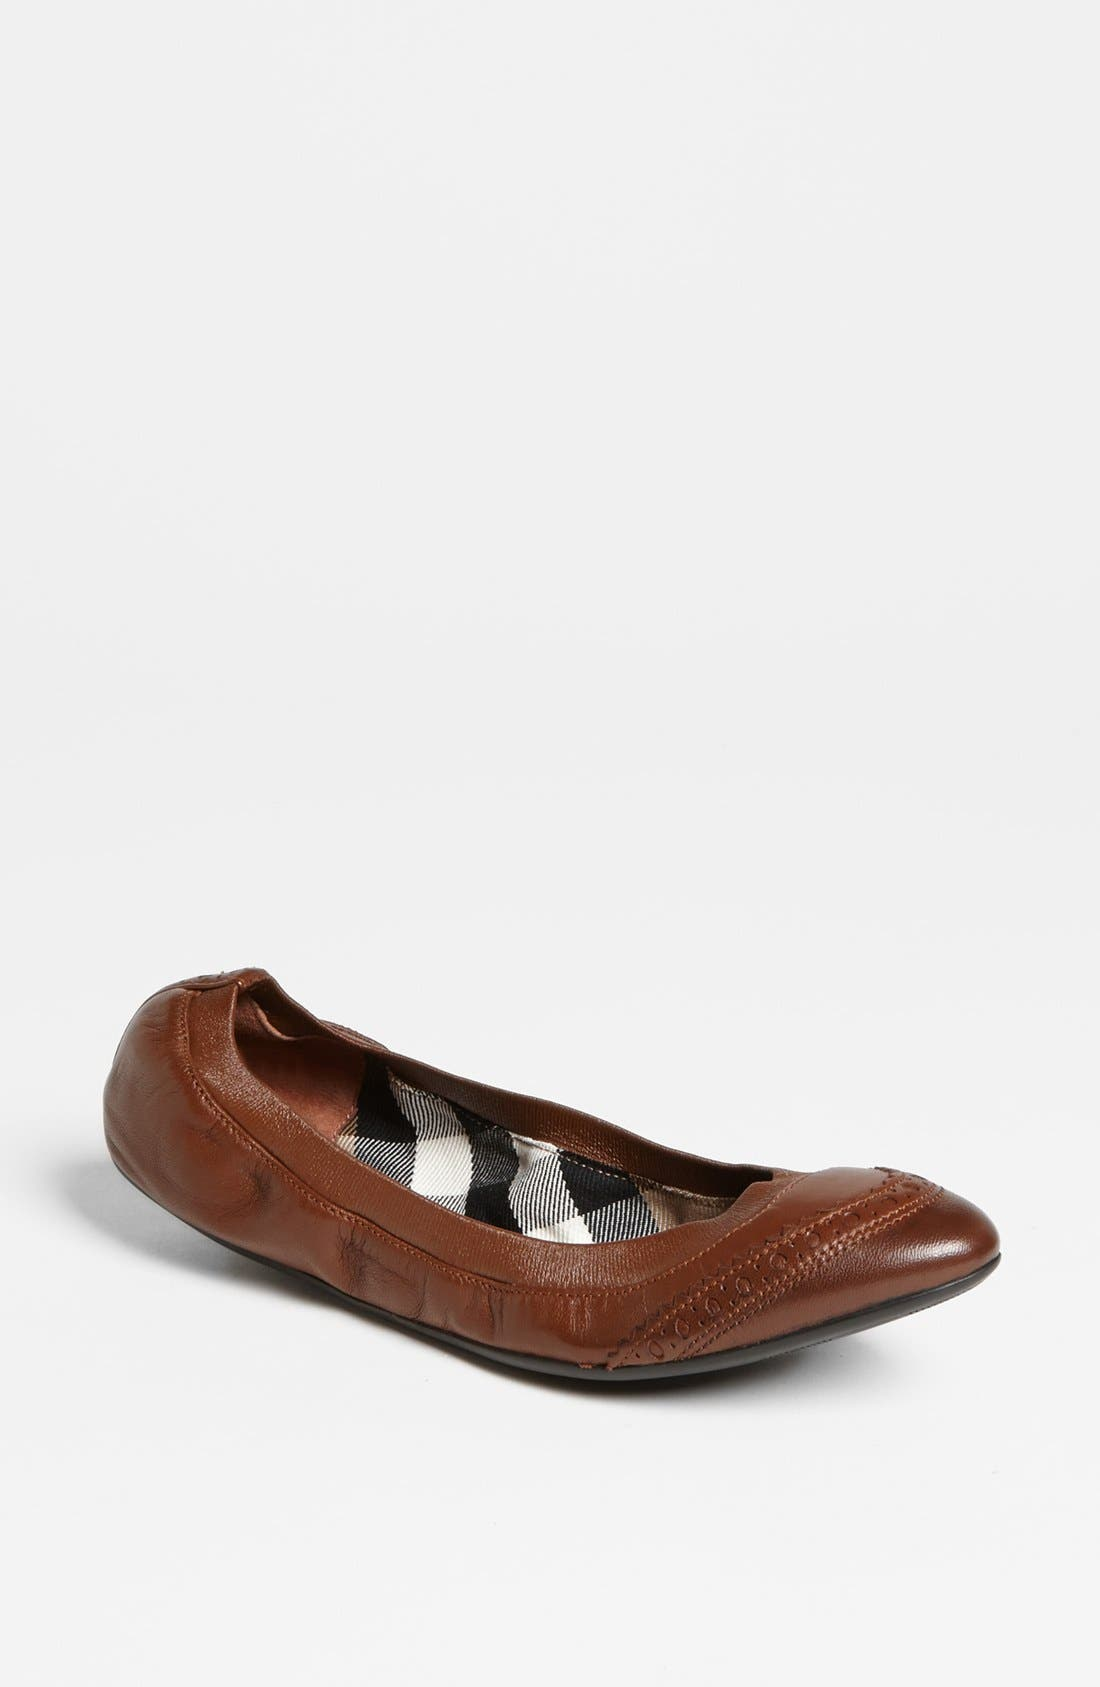 Alternate Image 1 Selected - Burberry 'Berryfield' Flat (Online Only)